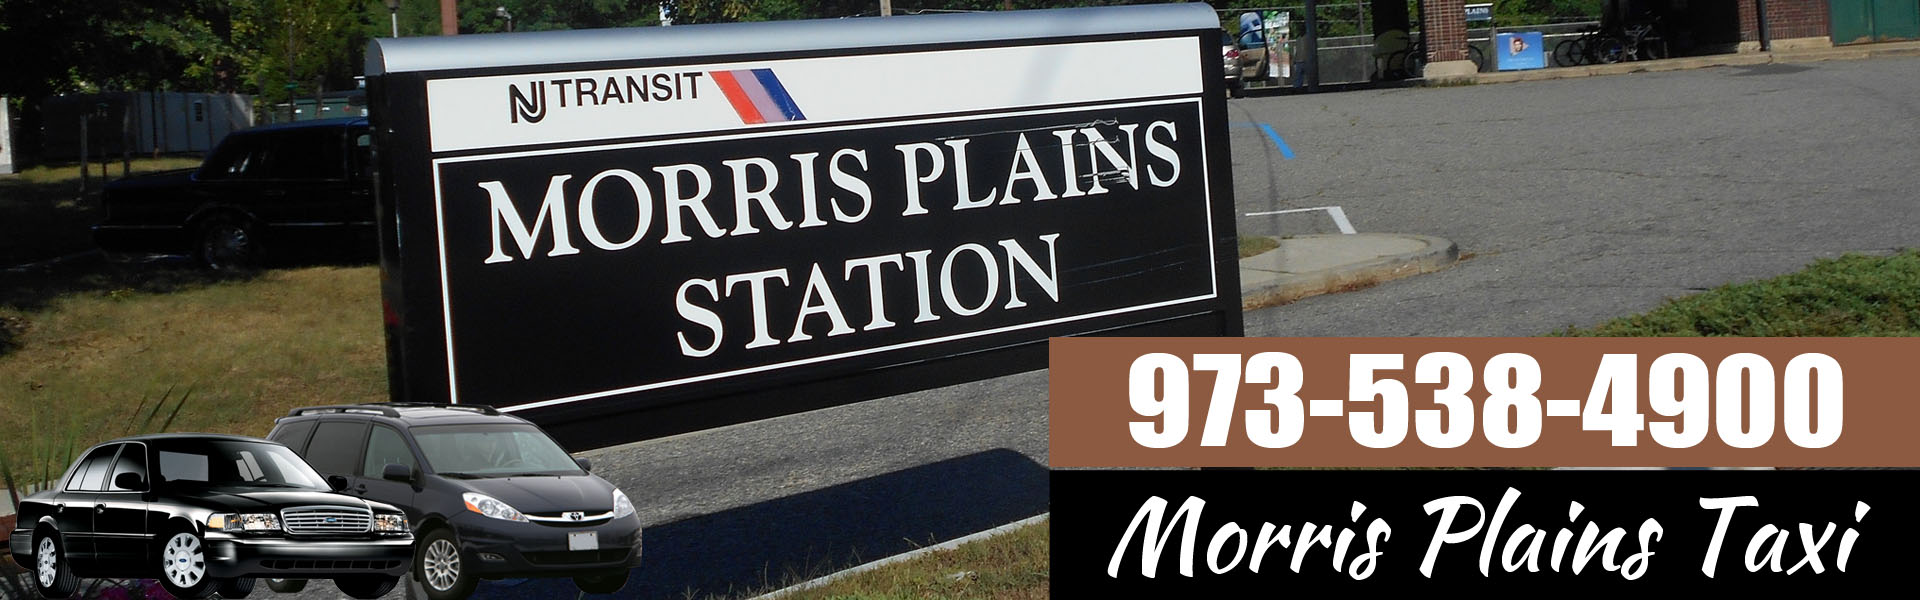 Morris Plains to Newark Airport Taxi Service